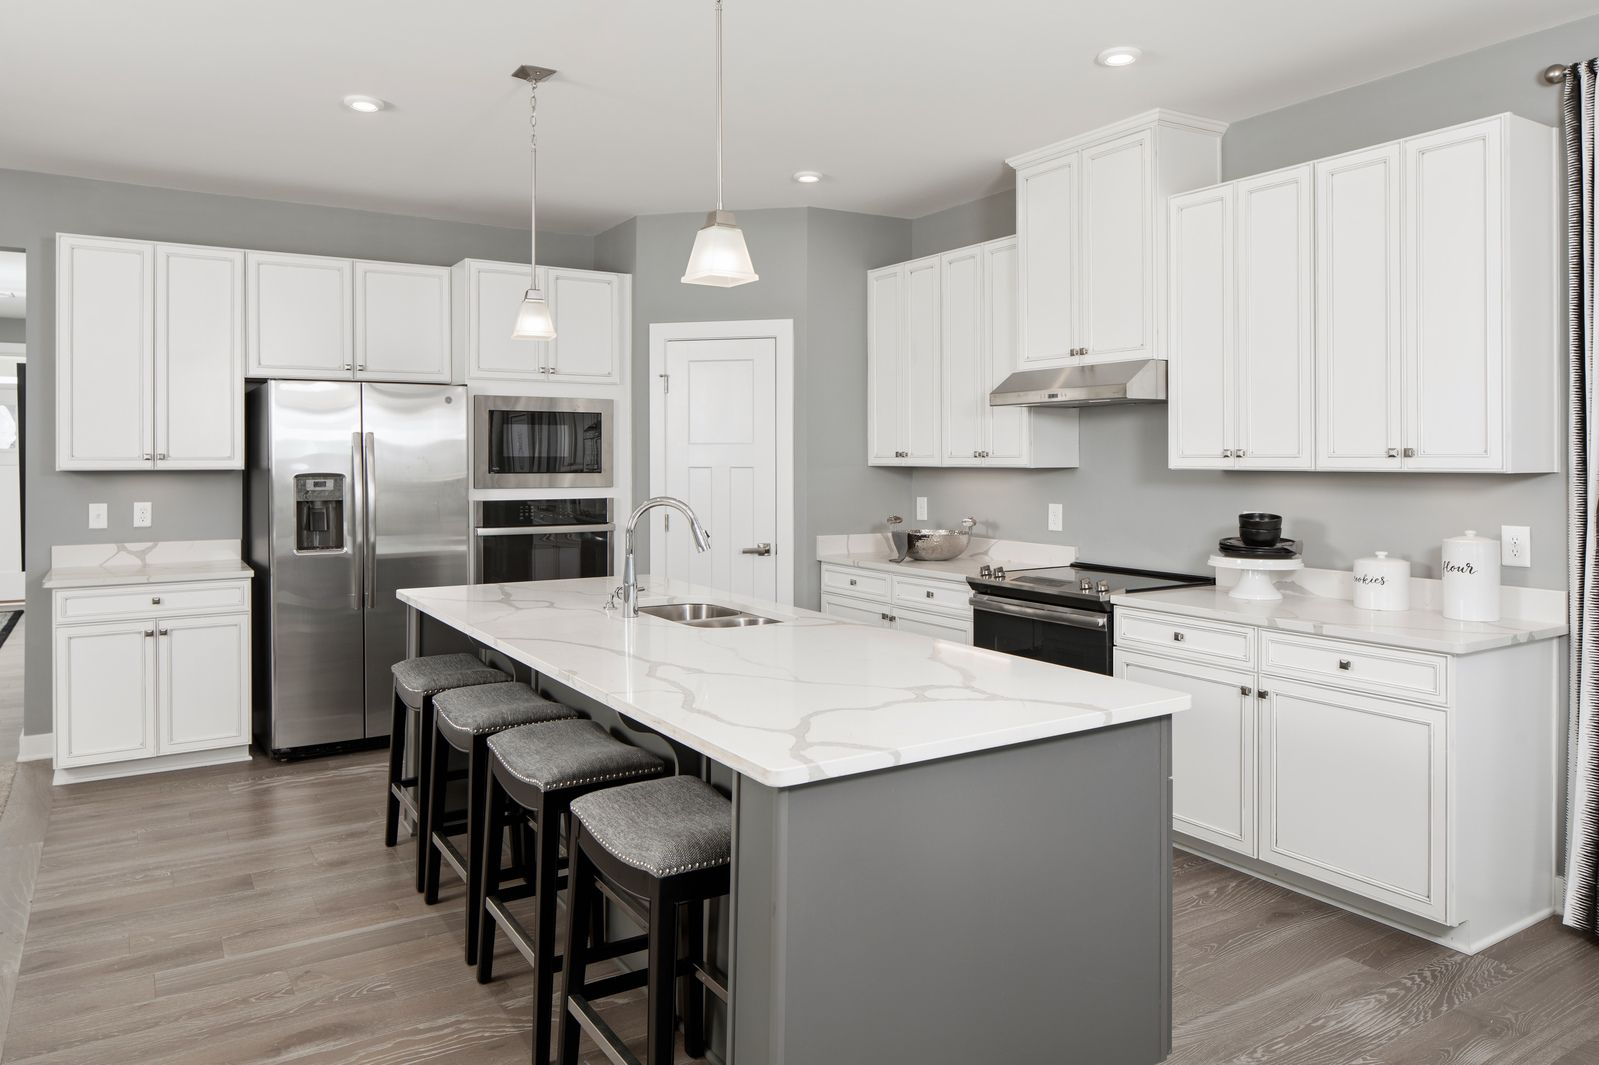 Kitchen featured in the Savannah By Ryan Homes in Washington, MD